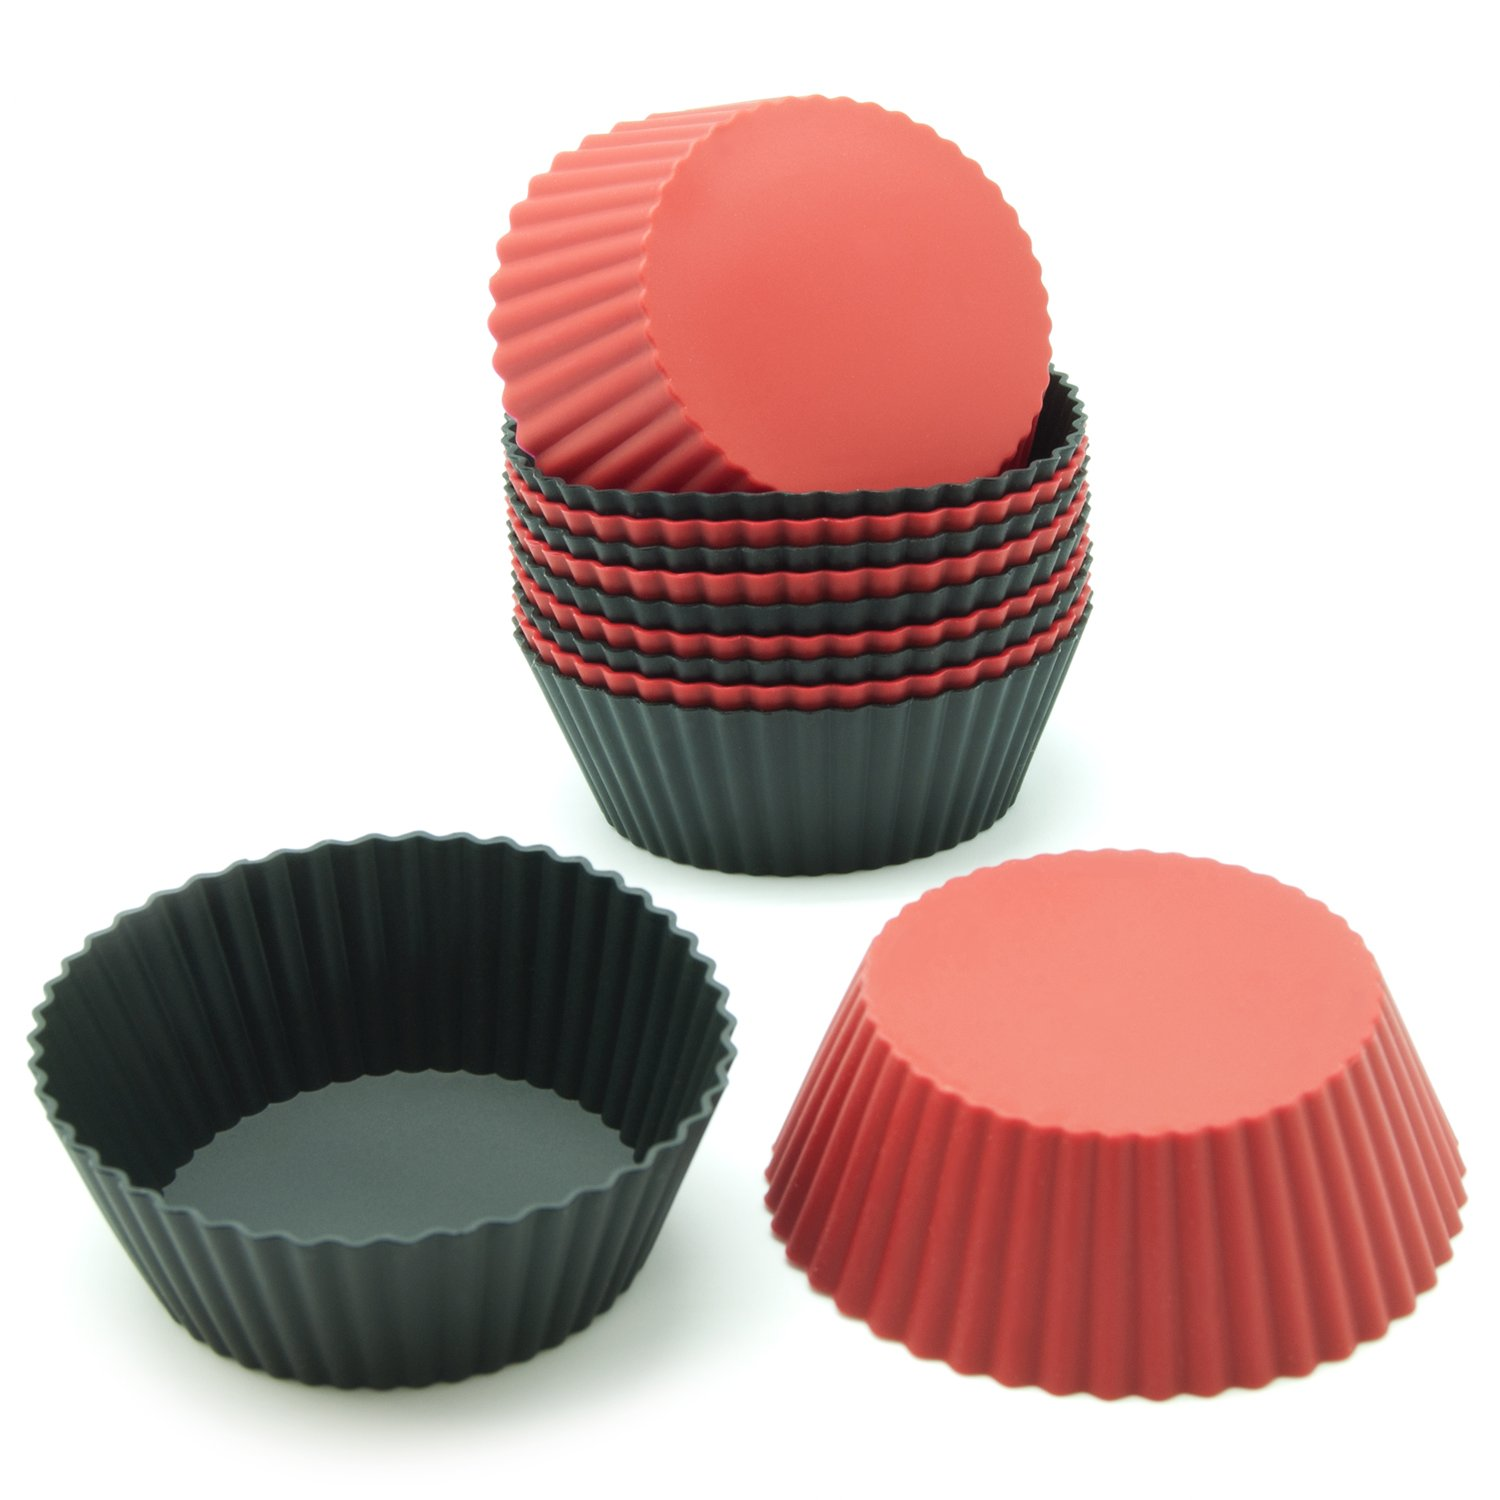 Buy Freshware Cb 304rb 12 Pack Silicone Mini Round Reusable Cupcake And Muffin Baking Cup Black And Red Colors Online At Low Prices In India Amazon In